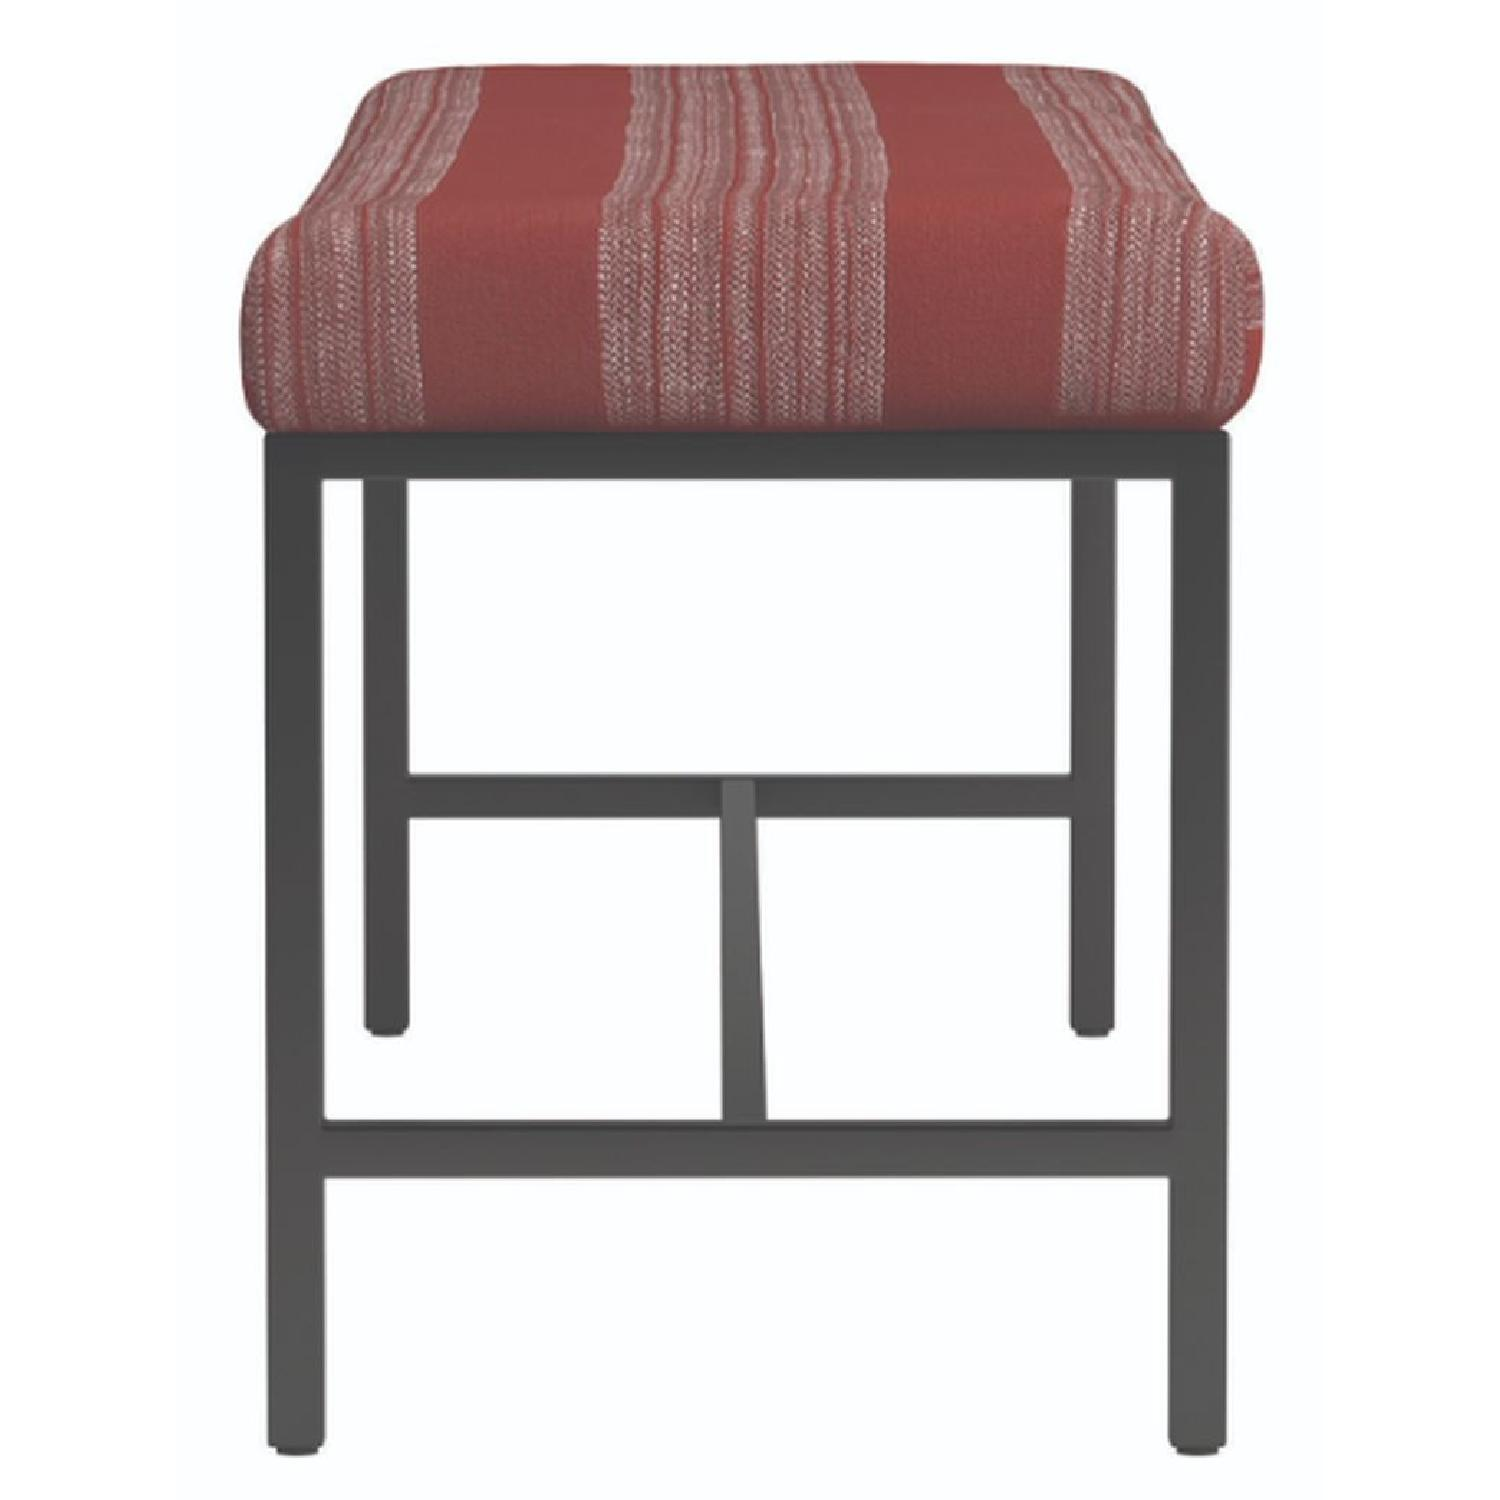 Bench in Electric Style Stripe Cushion w/ Metal Base - image-3